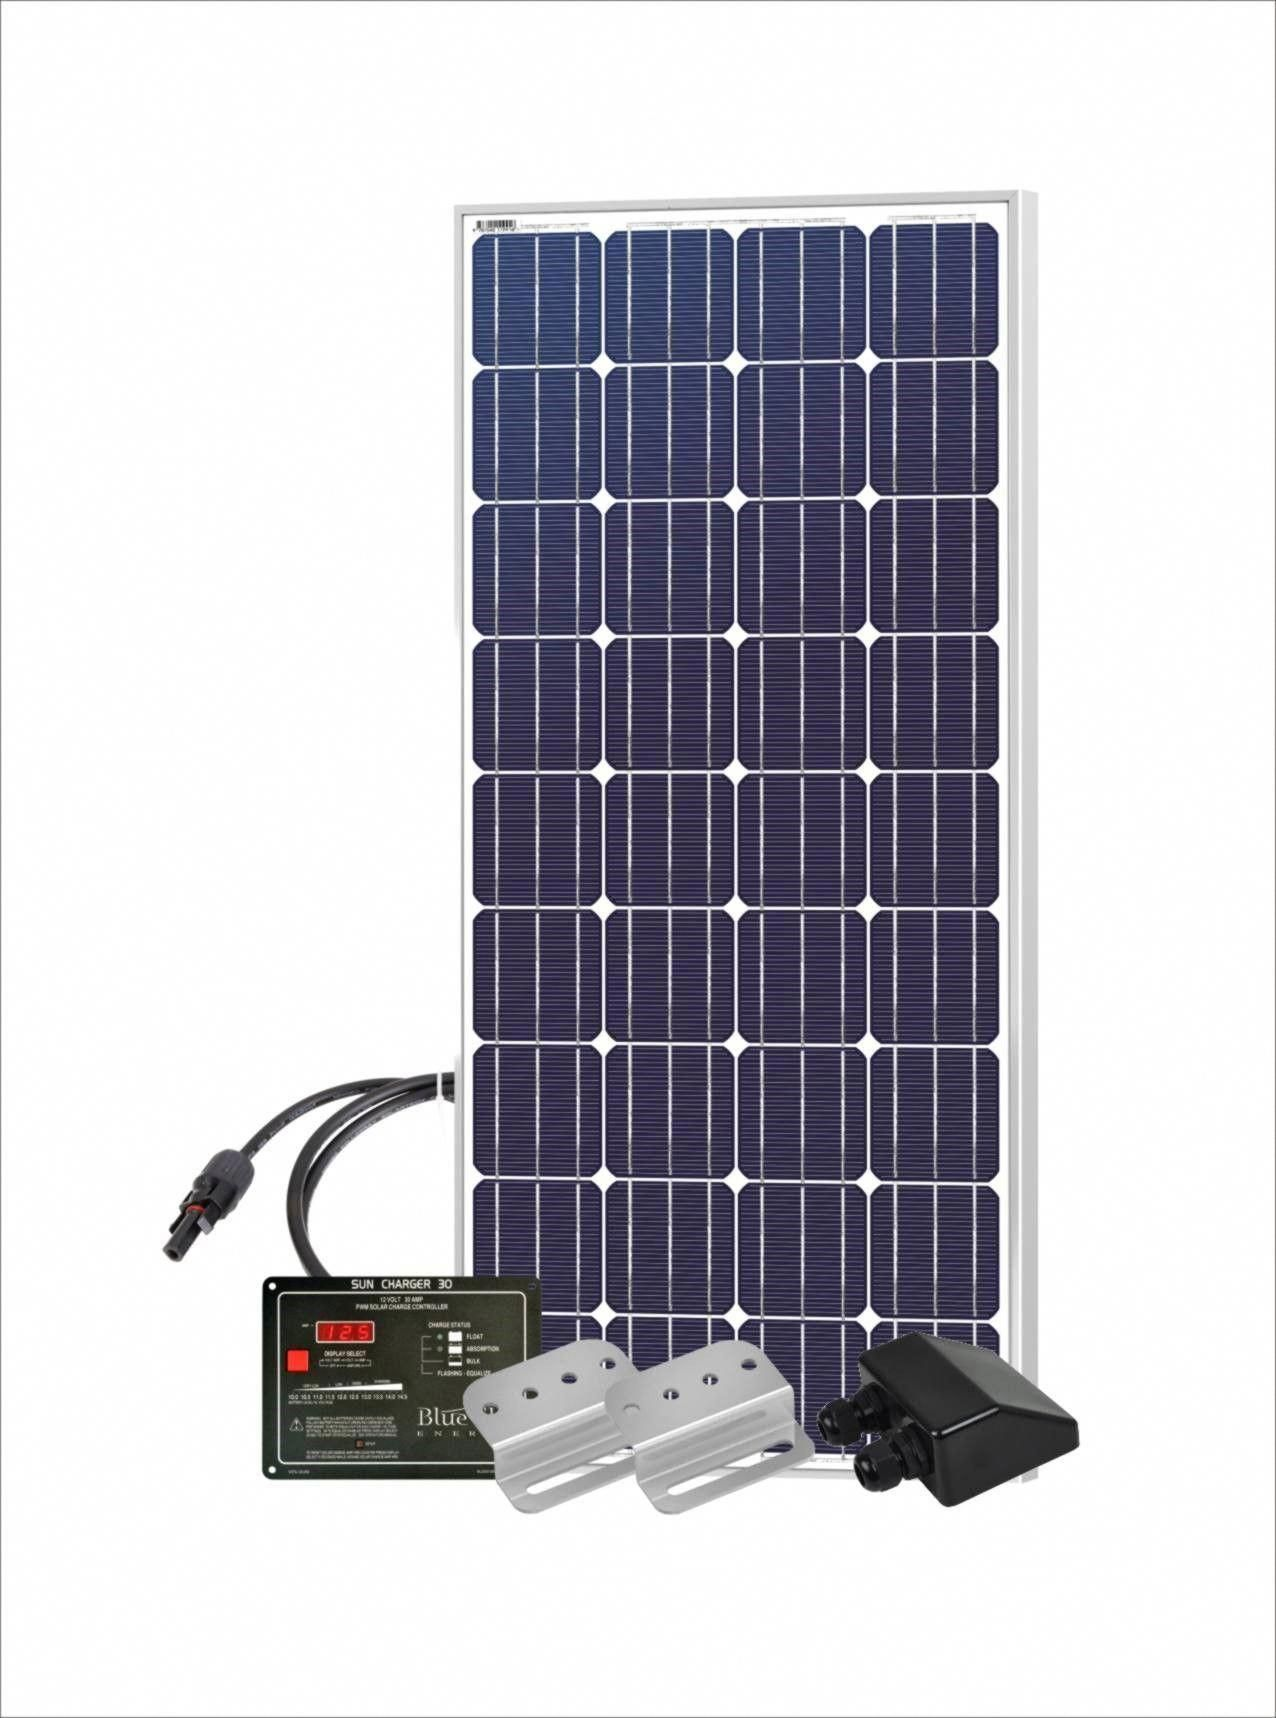 150 Watt 12 Volt Dc Rv Solar Panel Starter Kit With 150w Solar Panel Blue Sky Energy Sc30 Charge Controller Solar Panel Mounts And 50 Of 10 Awg Solar Wire Fro In 2020